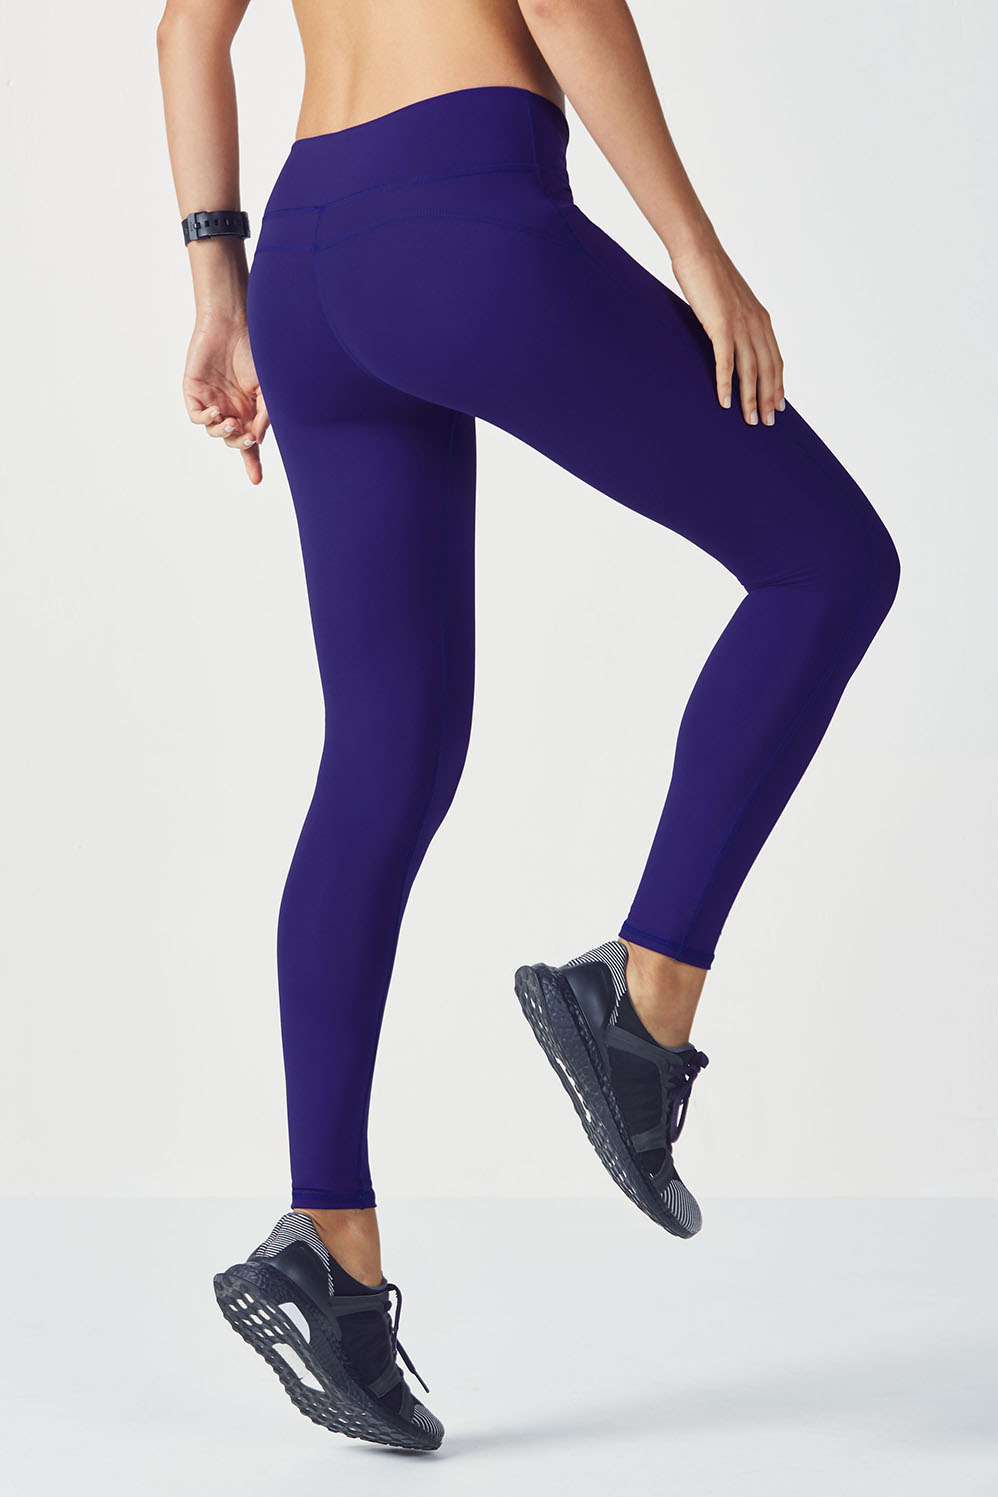 956647fd30872 These New Leggings Change Everything - The Fabletics Blog